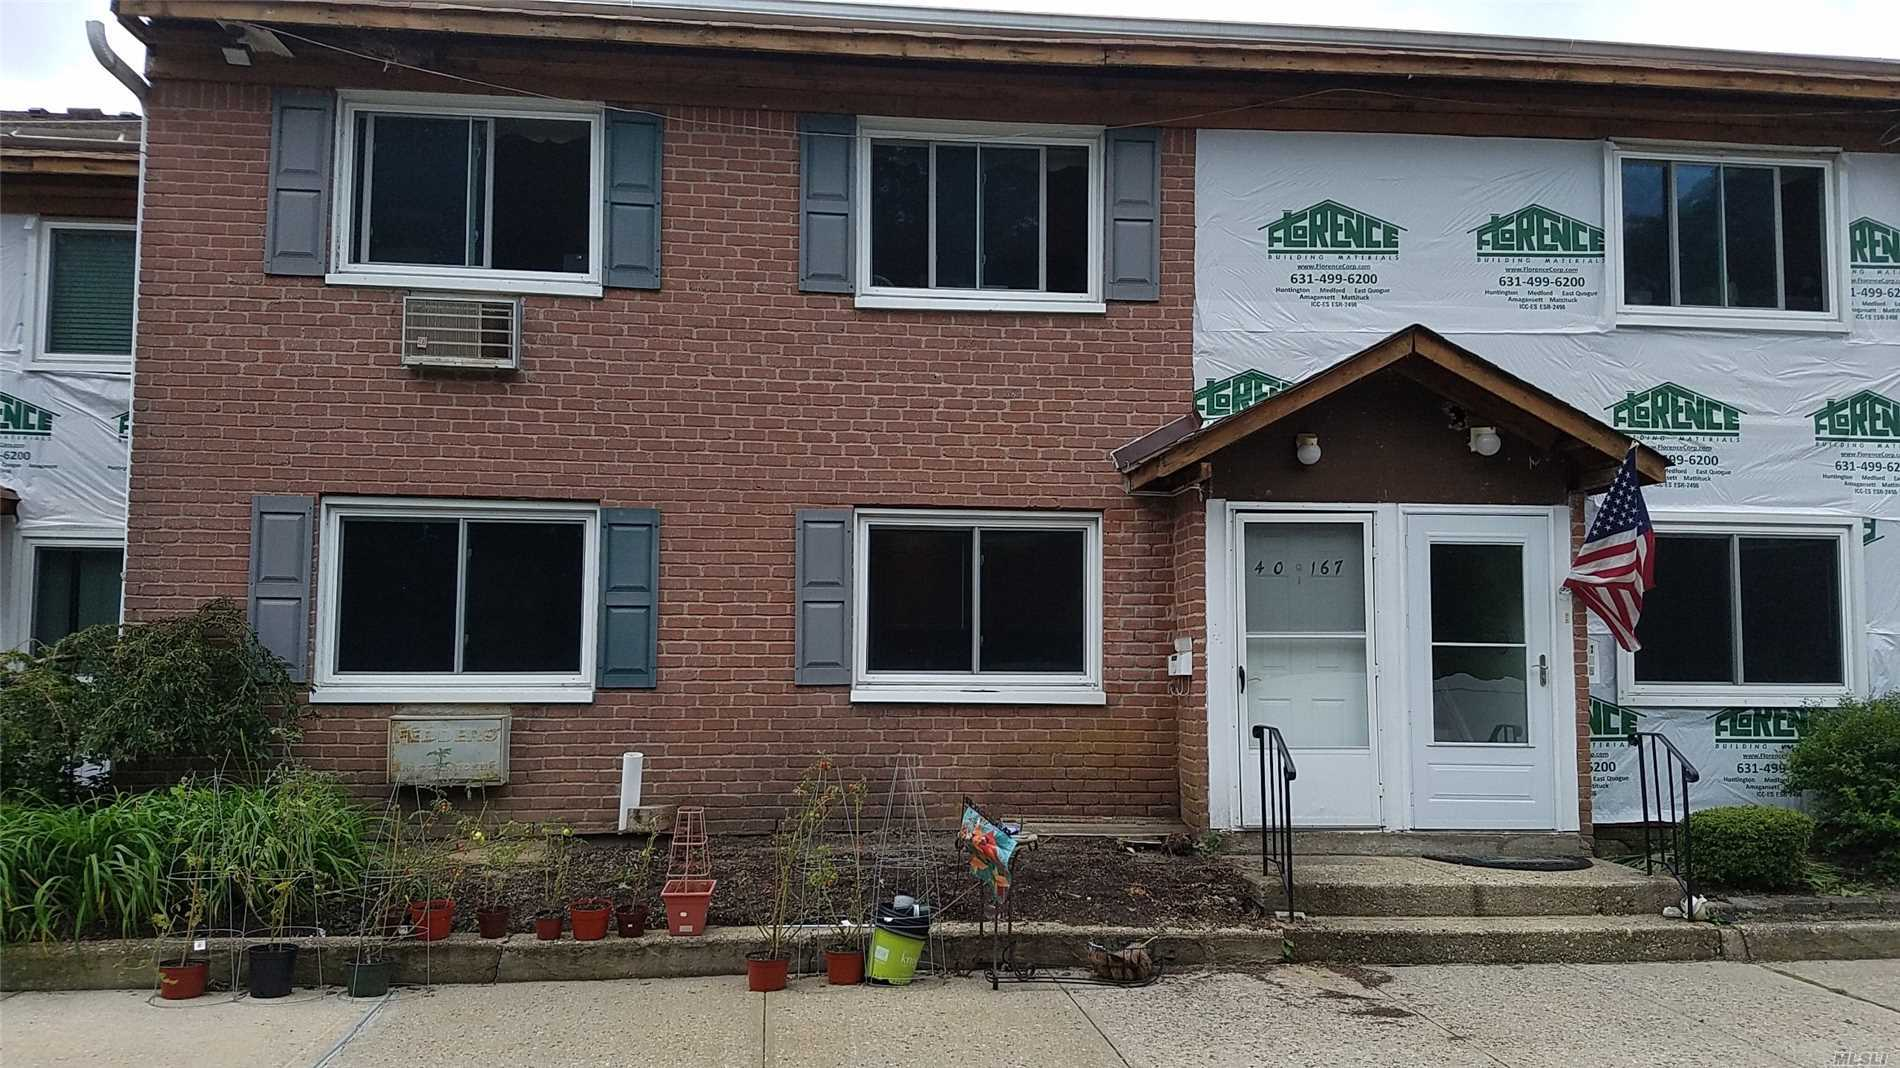 Property for sale at 40-167 W 4th St, Patchogue,  NY 11772